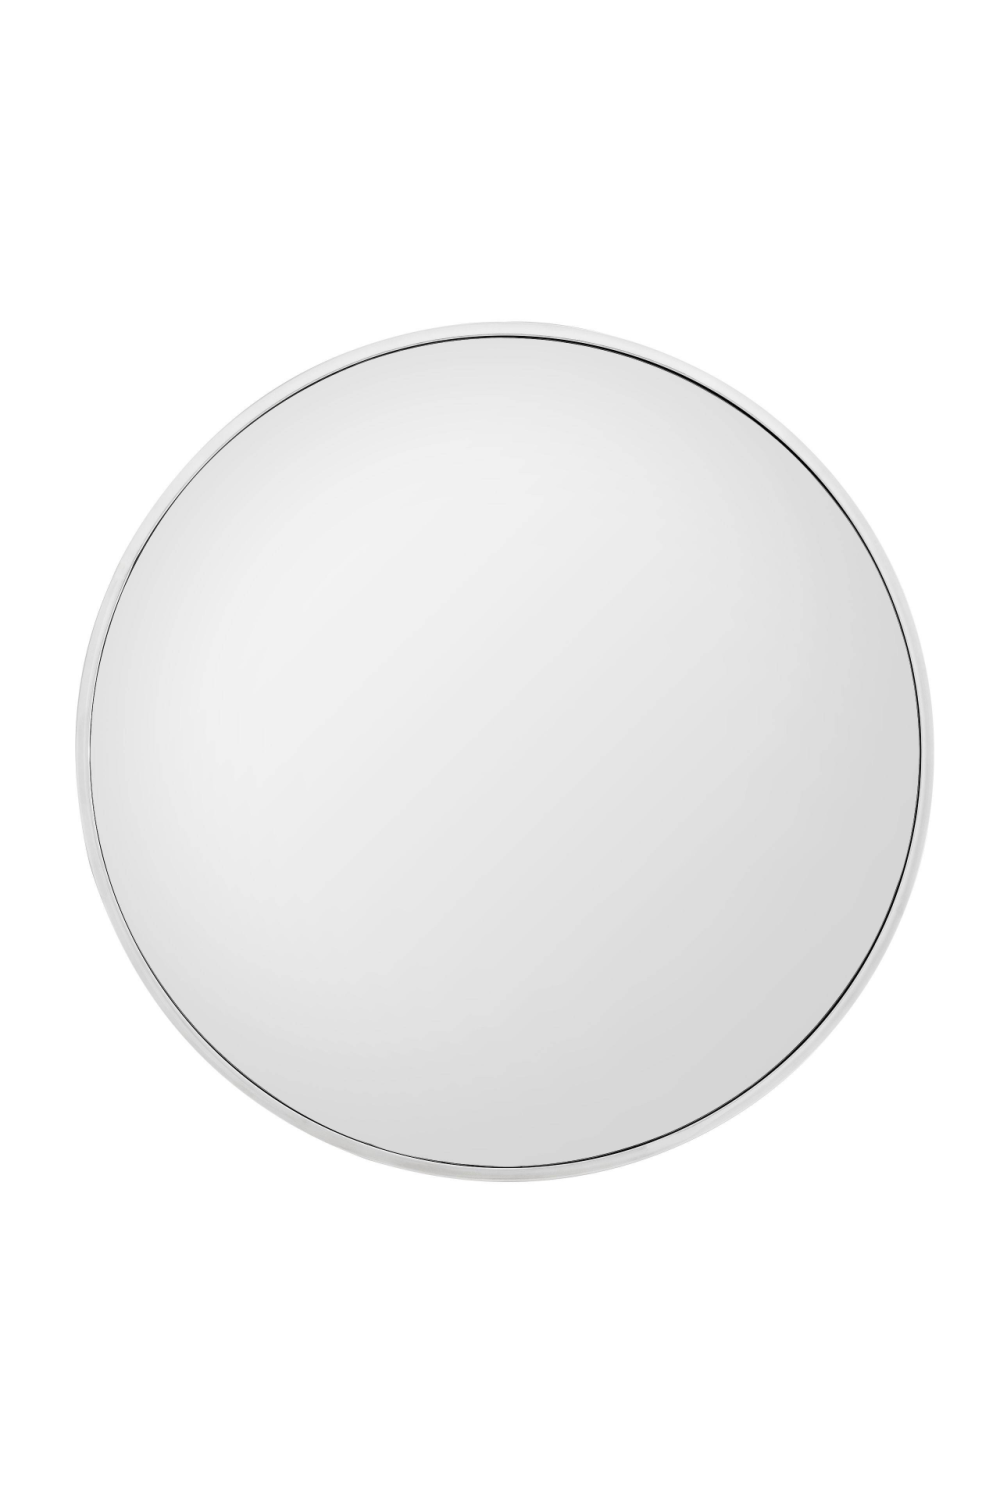 Round Contemporary Mirror | Eichholtz Heath | #1 Eichholtz Retailer